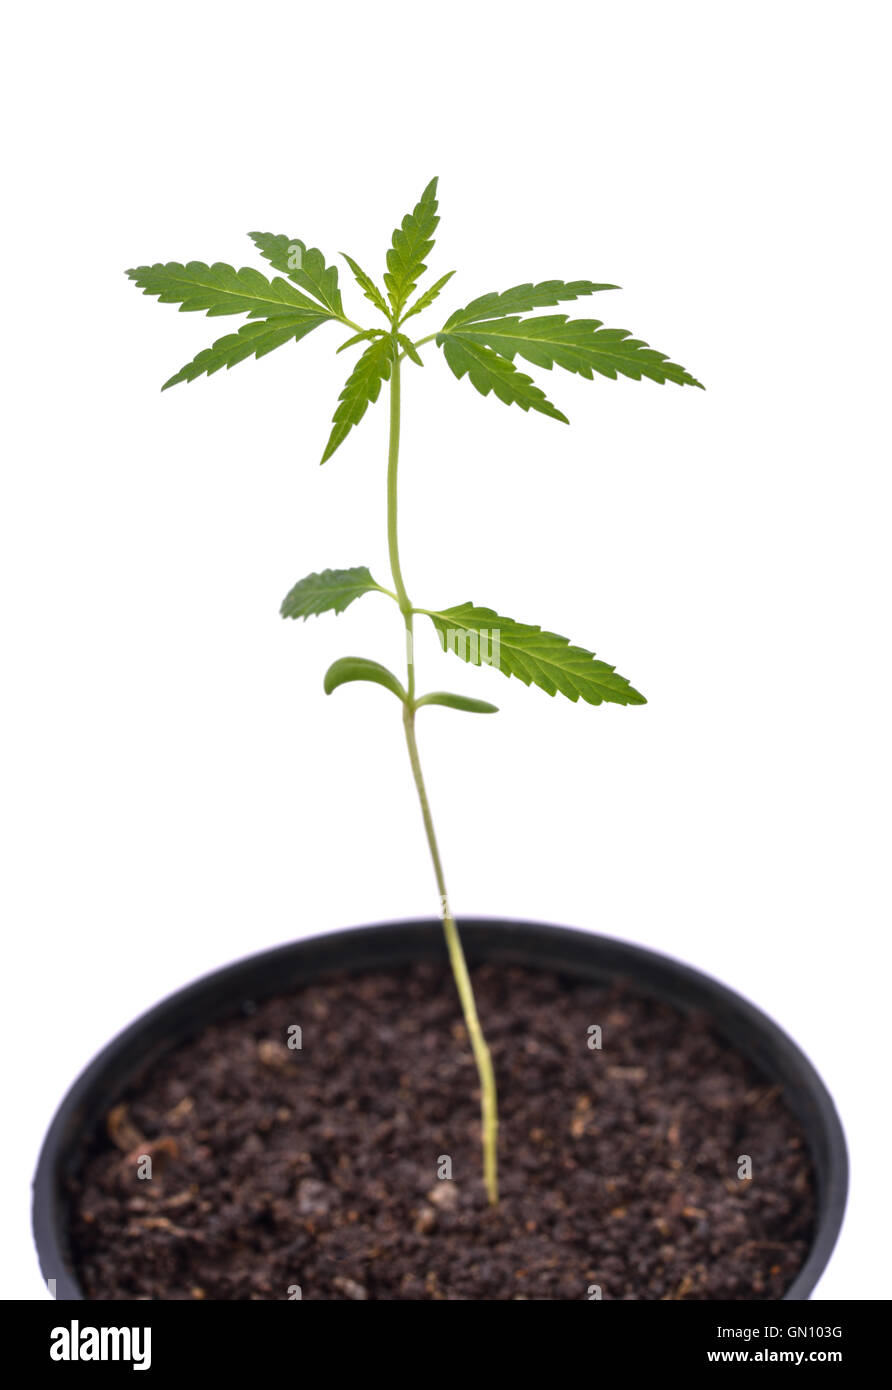 seedling of cannabis in planting pot - Stock Image